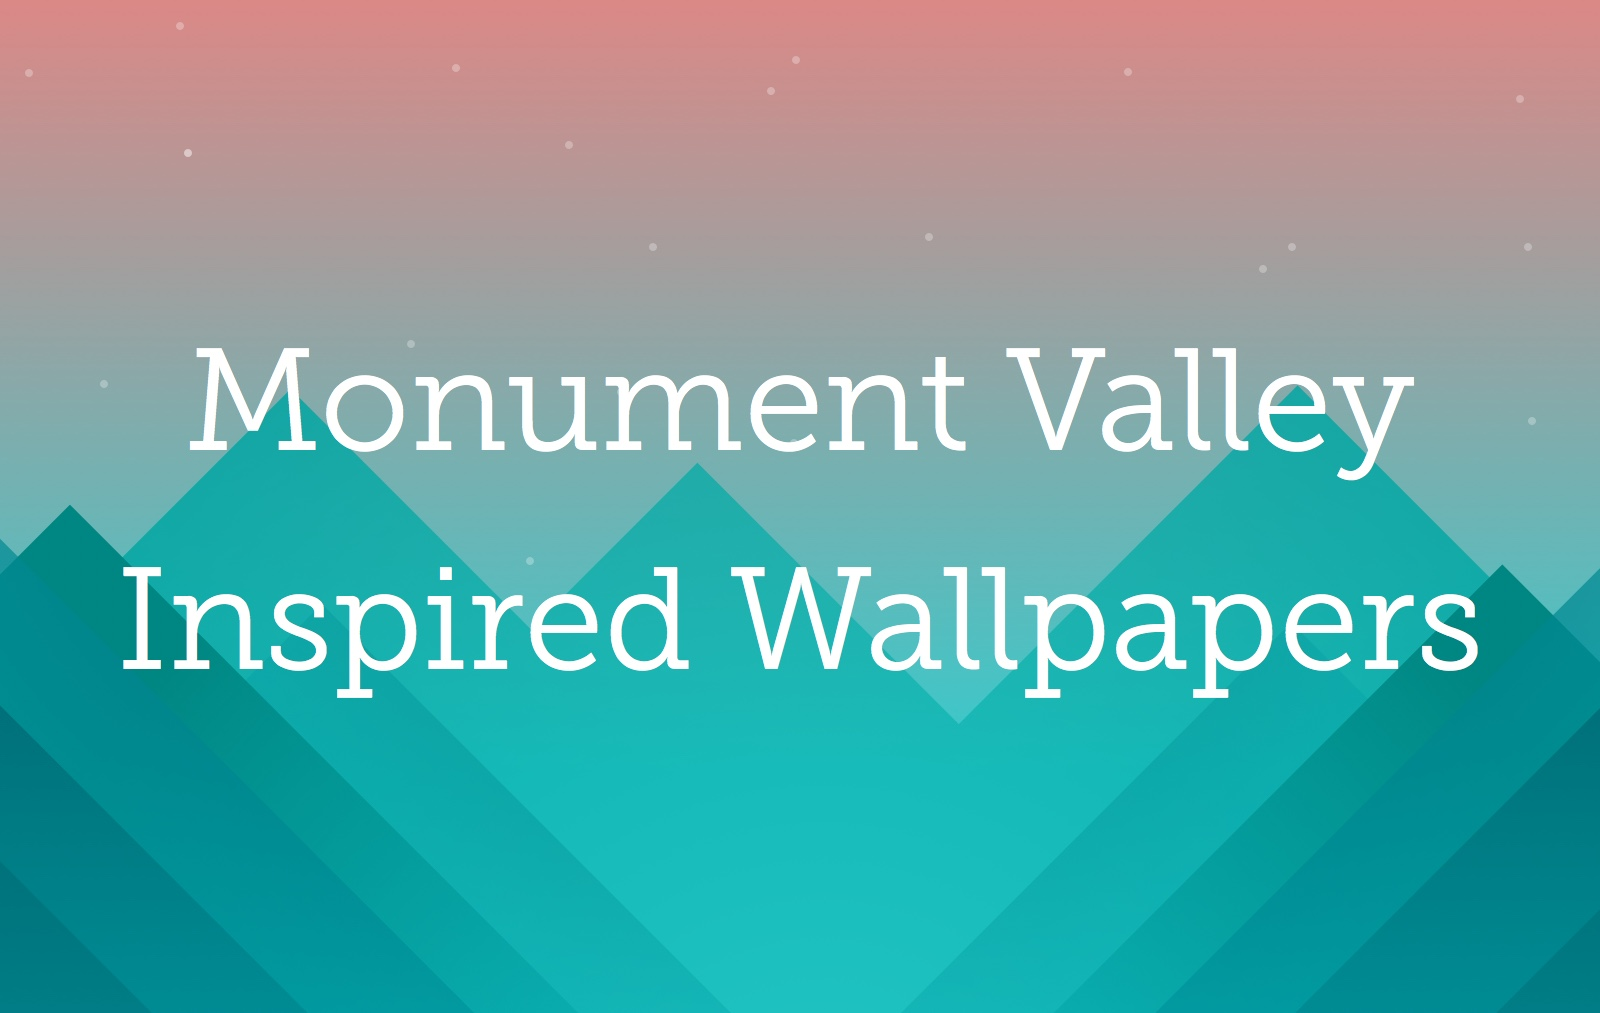 Monument Valley Inspired Wallpapers